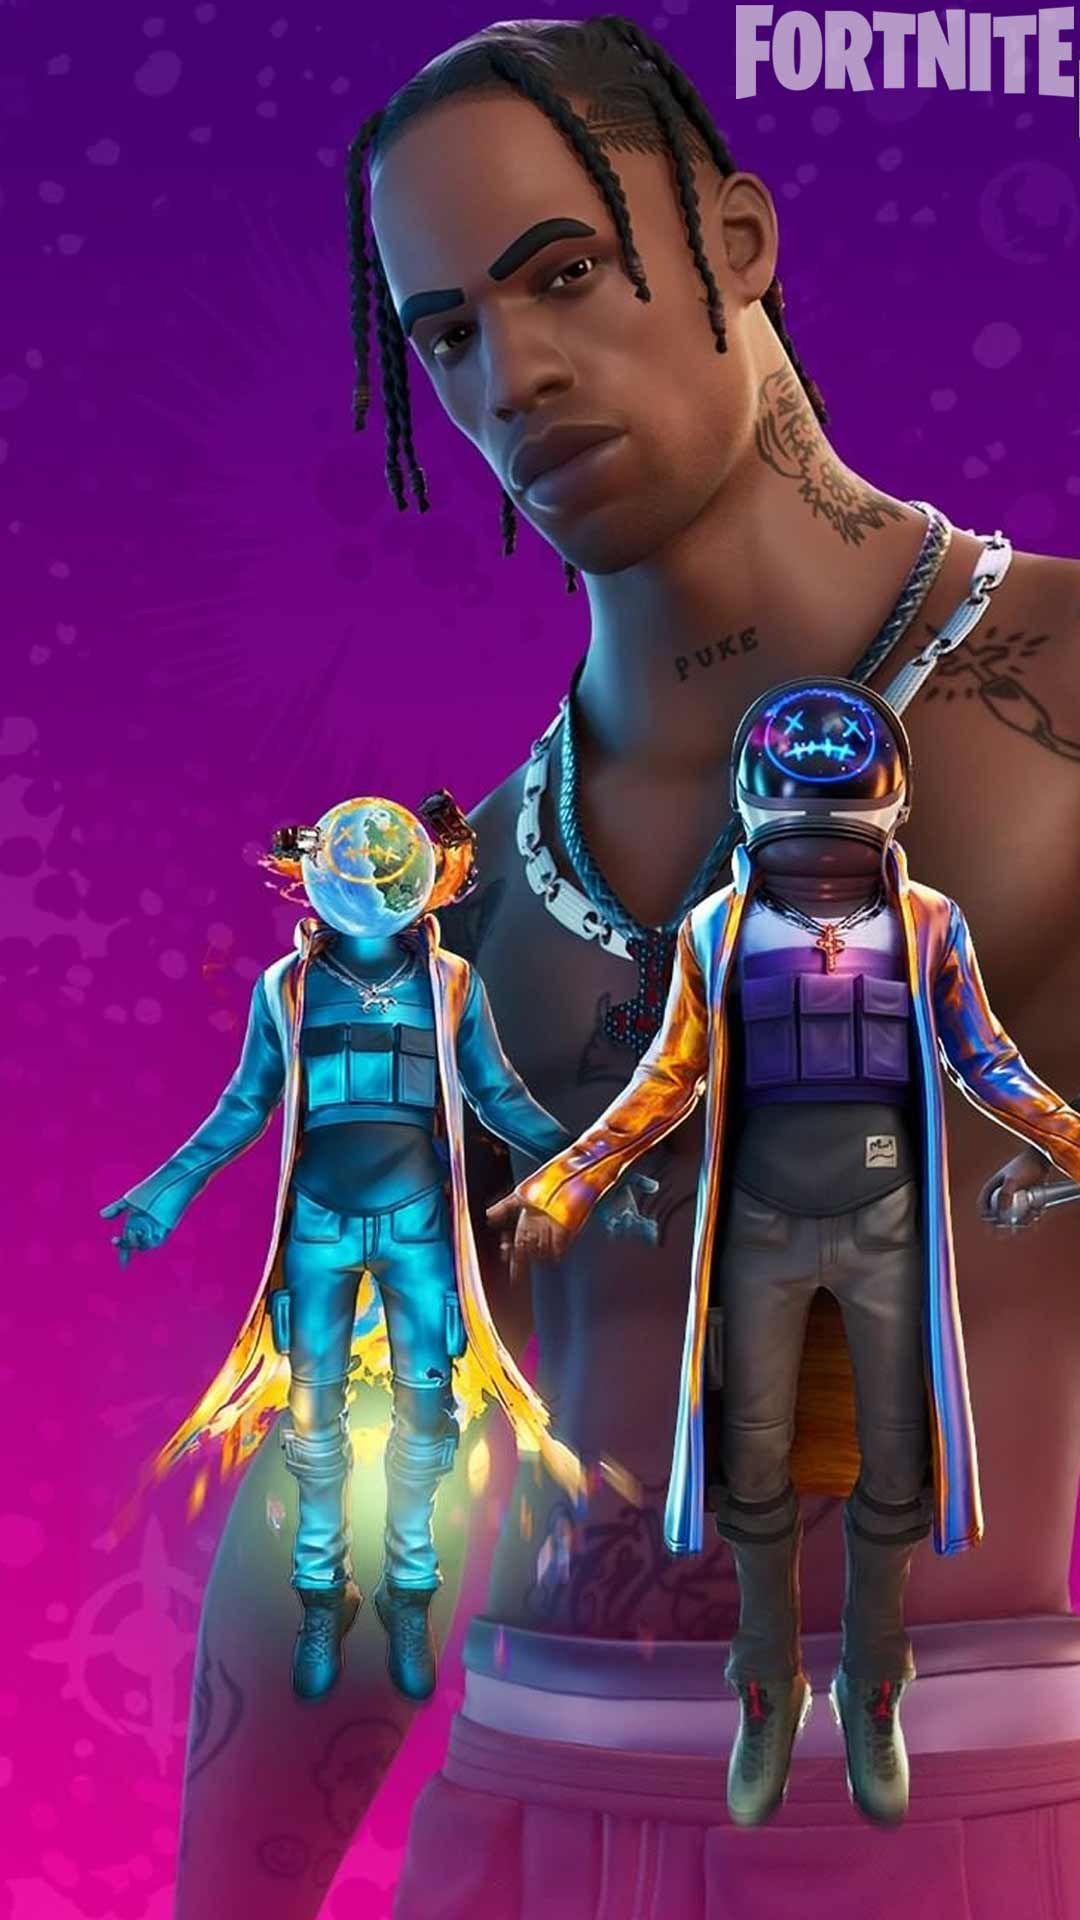 Astro Jack Fortnite Skin Wallpaper Hd Phone Backgrounds Art Poster For Iphone Android Home Screen In 2020 Astro Gaming Wallpapers Best Gaming Wallpapers